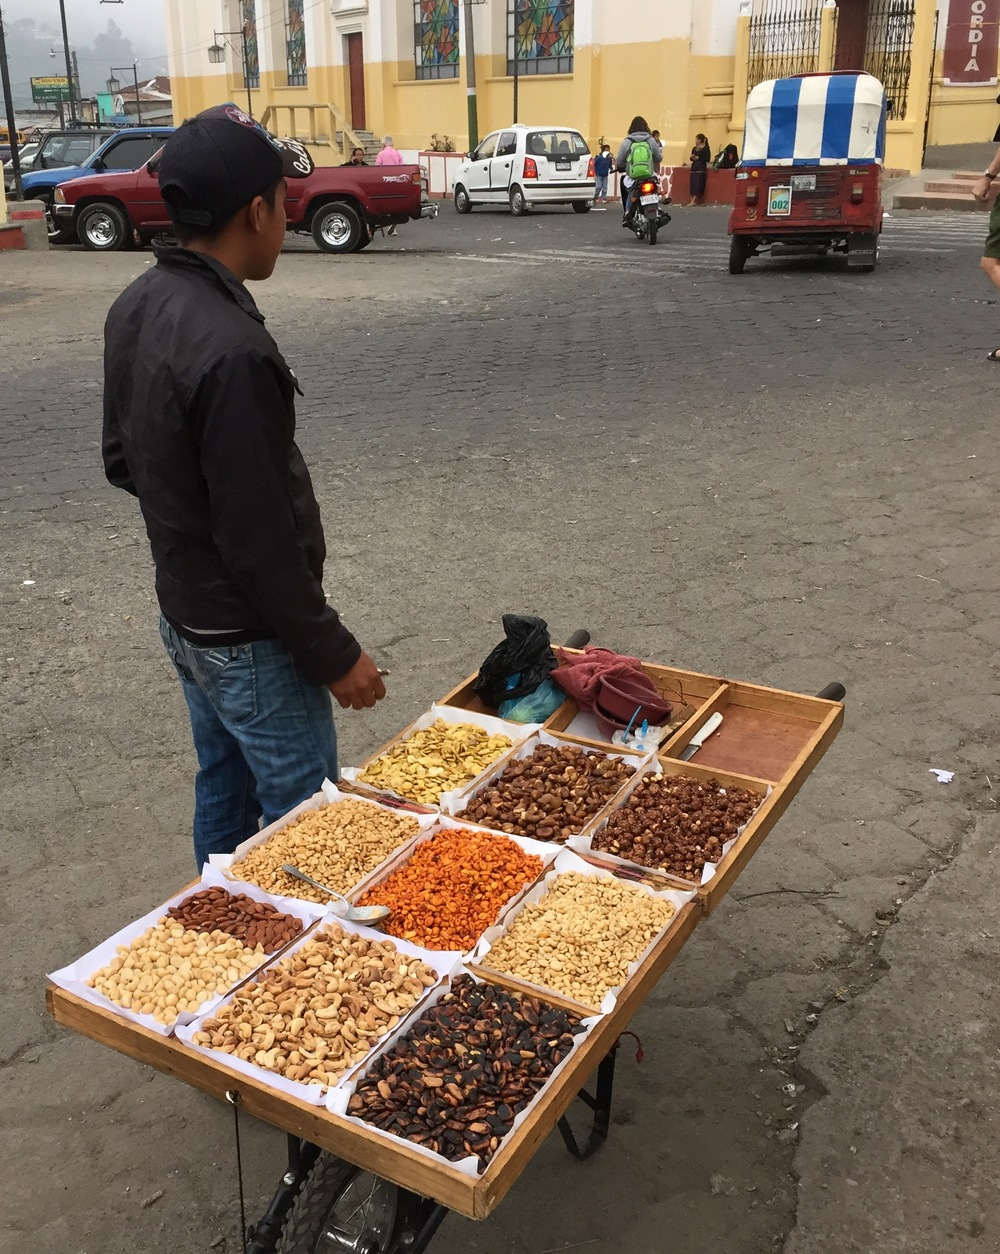 A nut vendor in the plaza outside the Solala market.